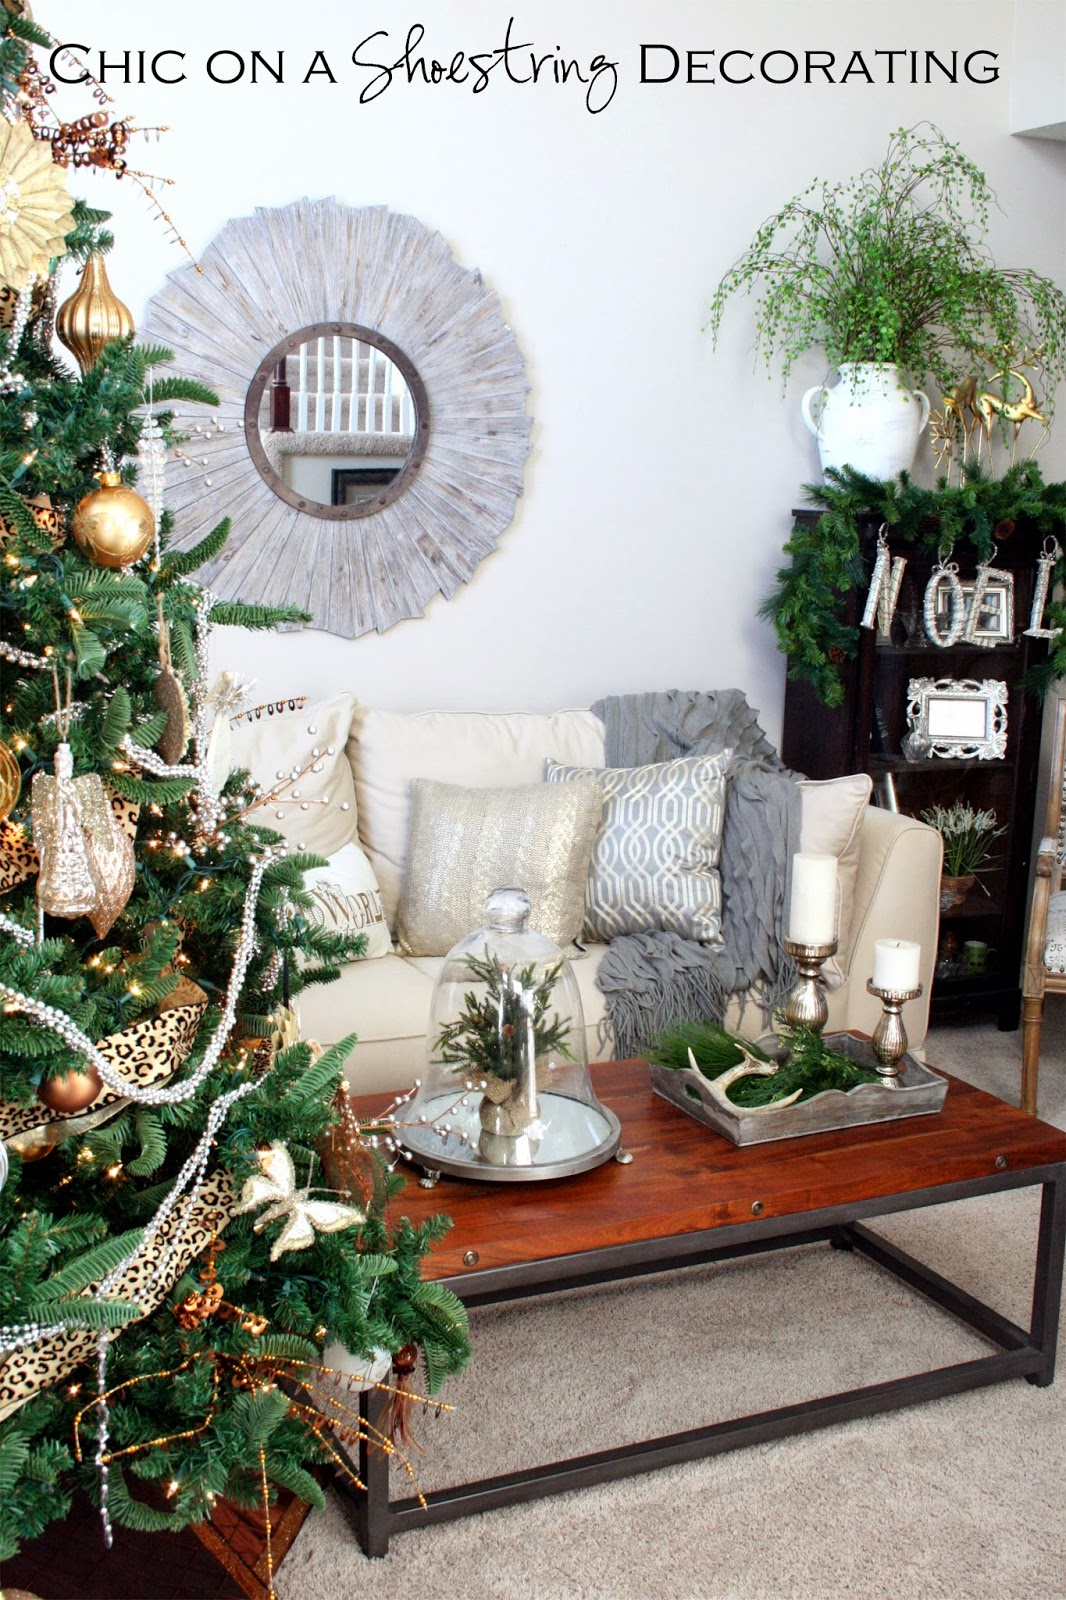 Chic on a Shoestring Decorating: Christmas Home Tour Part 1, The ...